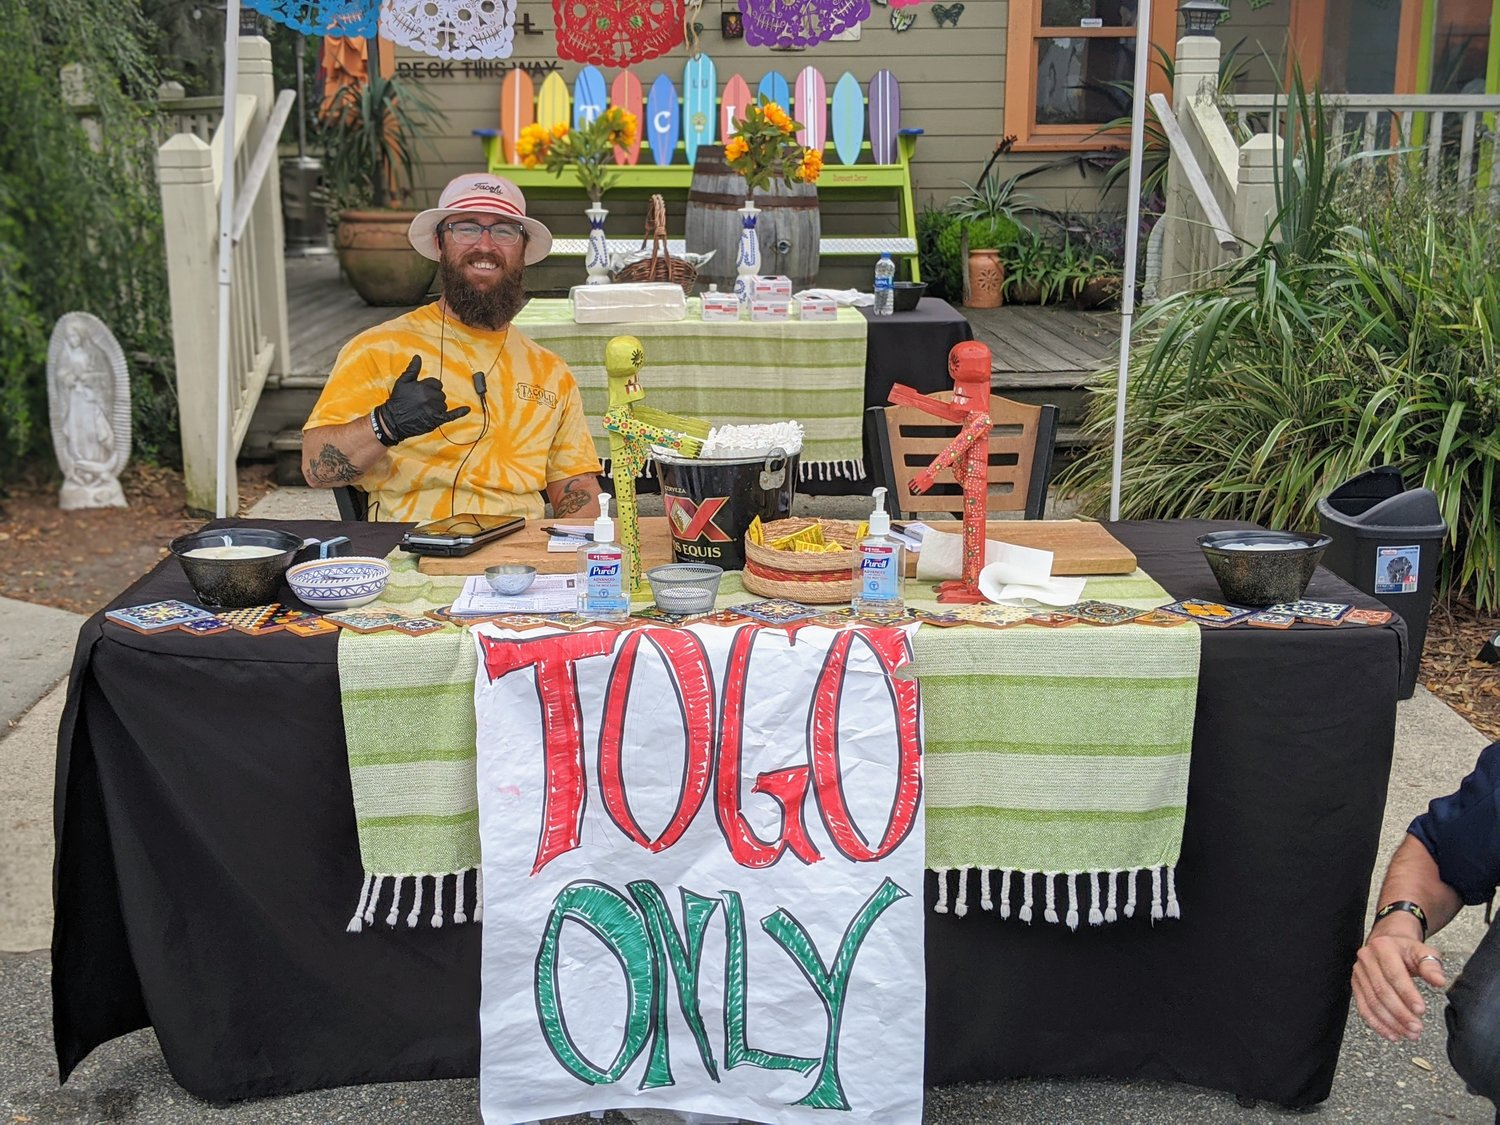 TacoLu is currently offering curbside pick-up and to-go orders while offering free meals for industry workers within the community.